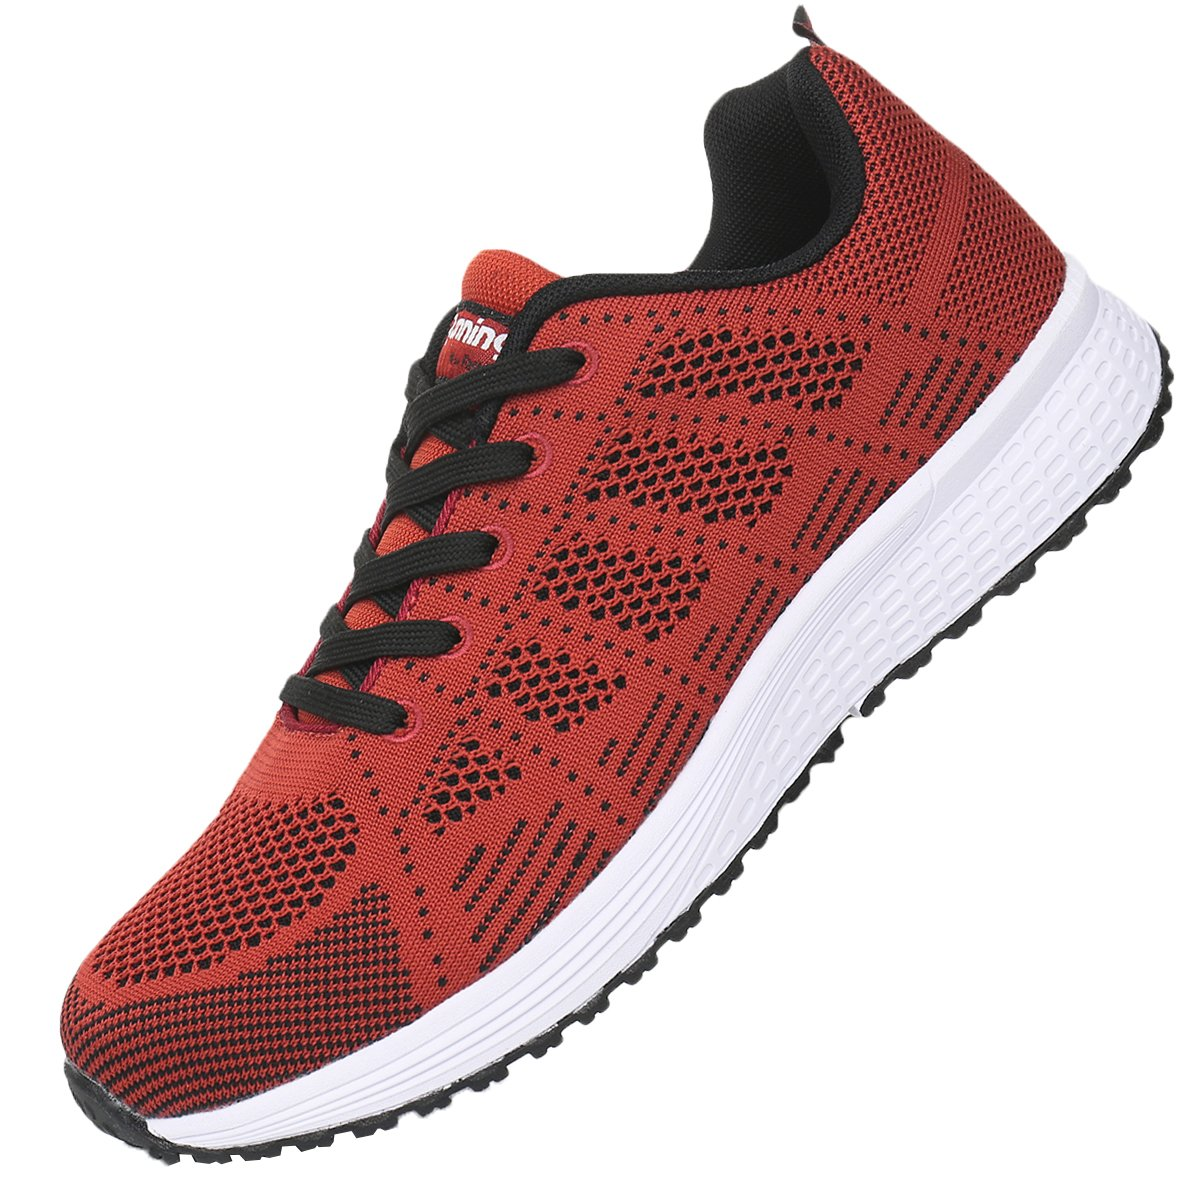 JARLIF Men's Breathable Fashion Walking Sneakers Lightweight Athletic Tennis Running Shoes US6.5-11.5 JARLIF-A08M-men-shoes